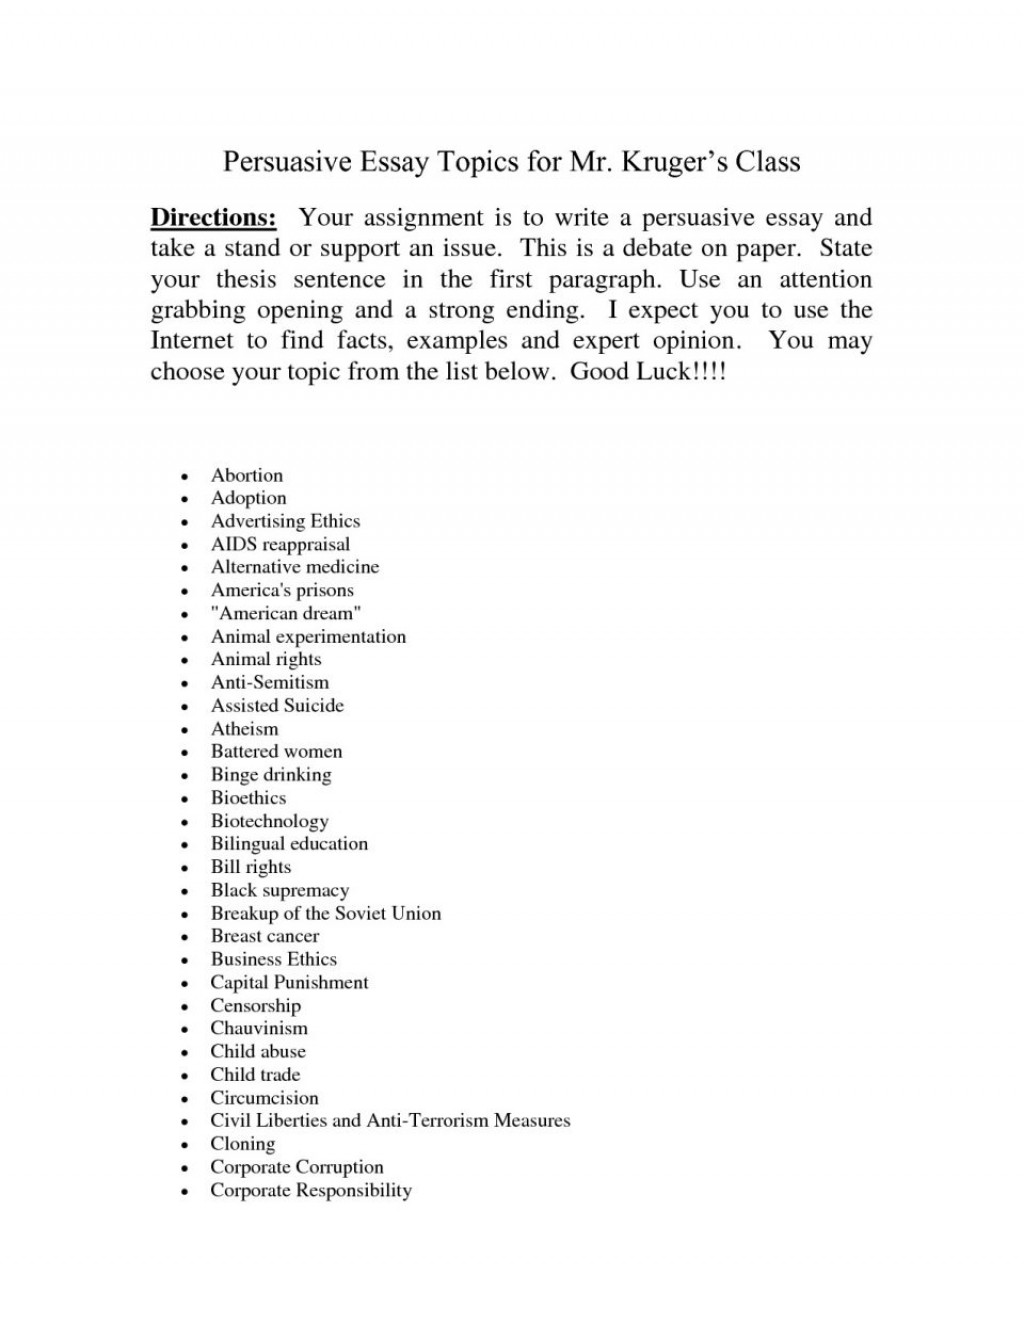 016 Research Paper Interesting Topics Topic For Essay Barca Fontanacountryinn Within Good Persuasive Narrative To Write Abo Easy About Personal Descriptive Surprising In History Papers Scientific High School Students Us Large